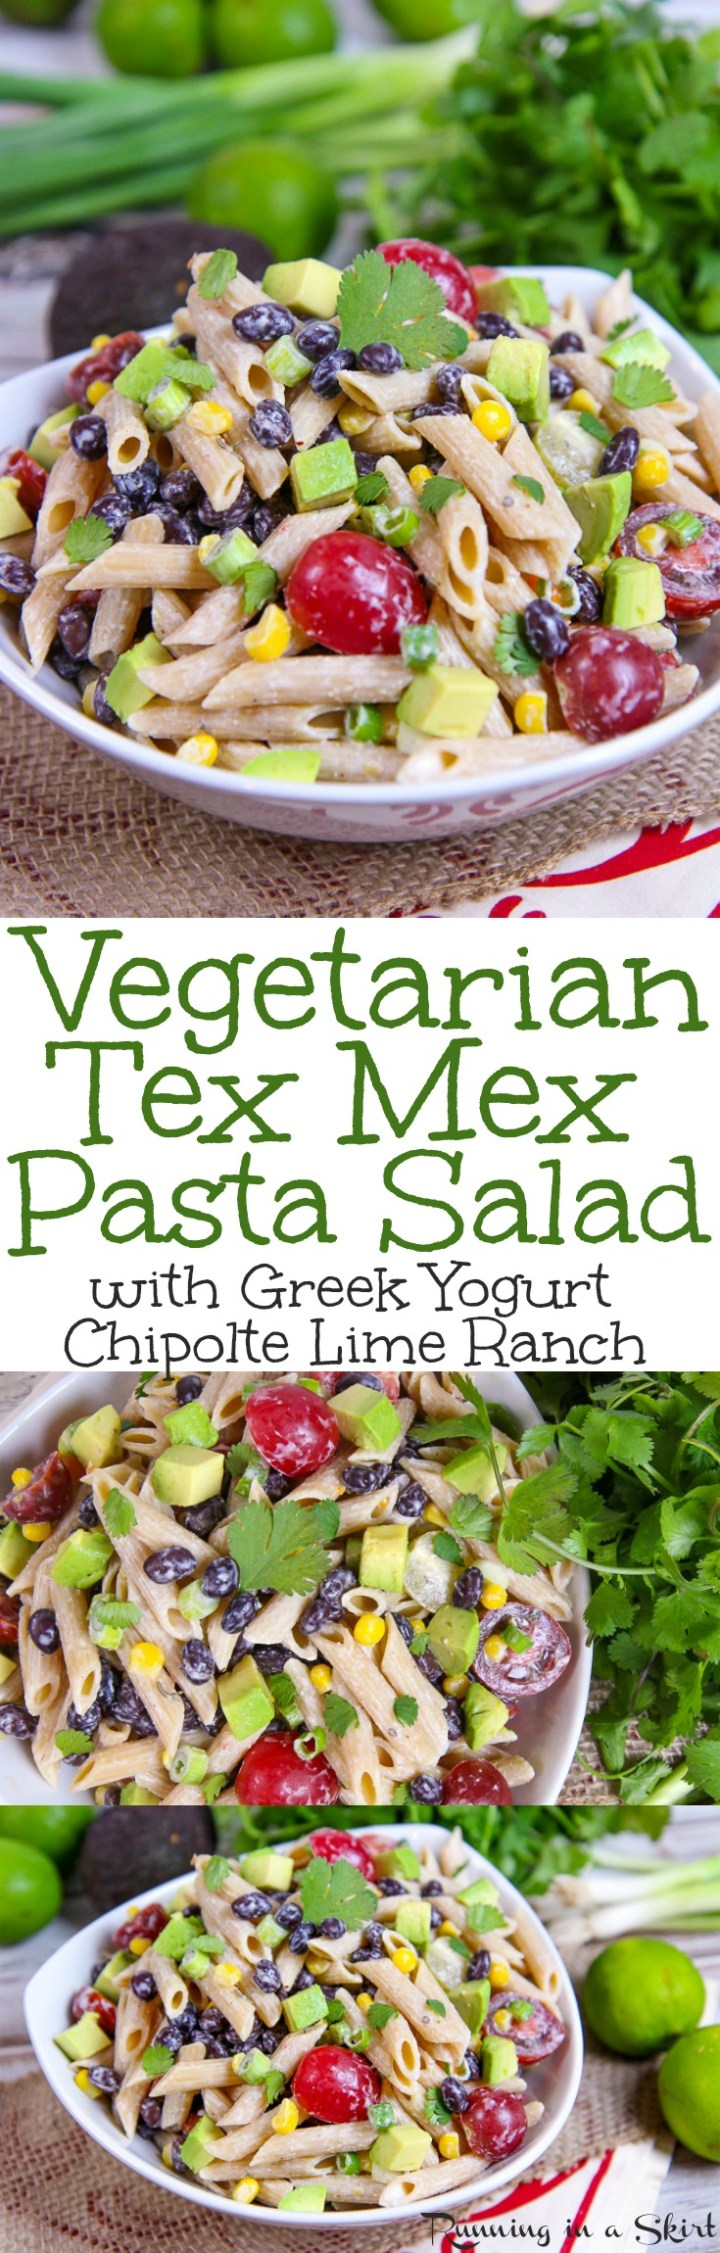 Healthy Tex Mex Pasta Salad recipe with Chipotle Lime Greek Yogurt Ranch Dressing. This easy, cold Mexican Pasta Salad is packed with black beans, veggies, tomato, corn and avocado! A simple vegetarian meal for weekday dinners, for a crowd, picnics or for families. / Running In a Skirt via @juliewunder